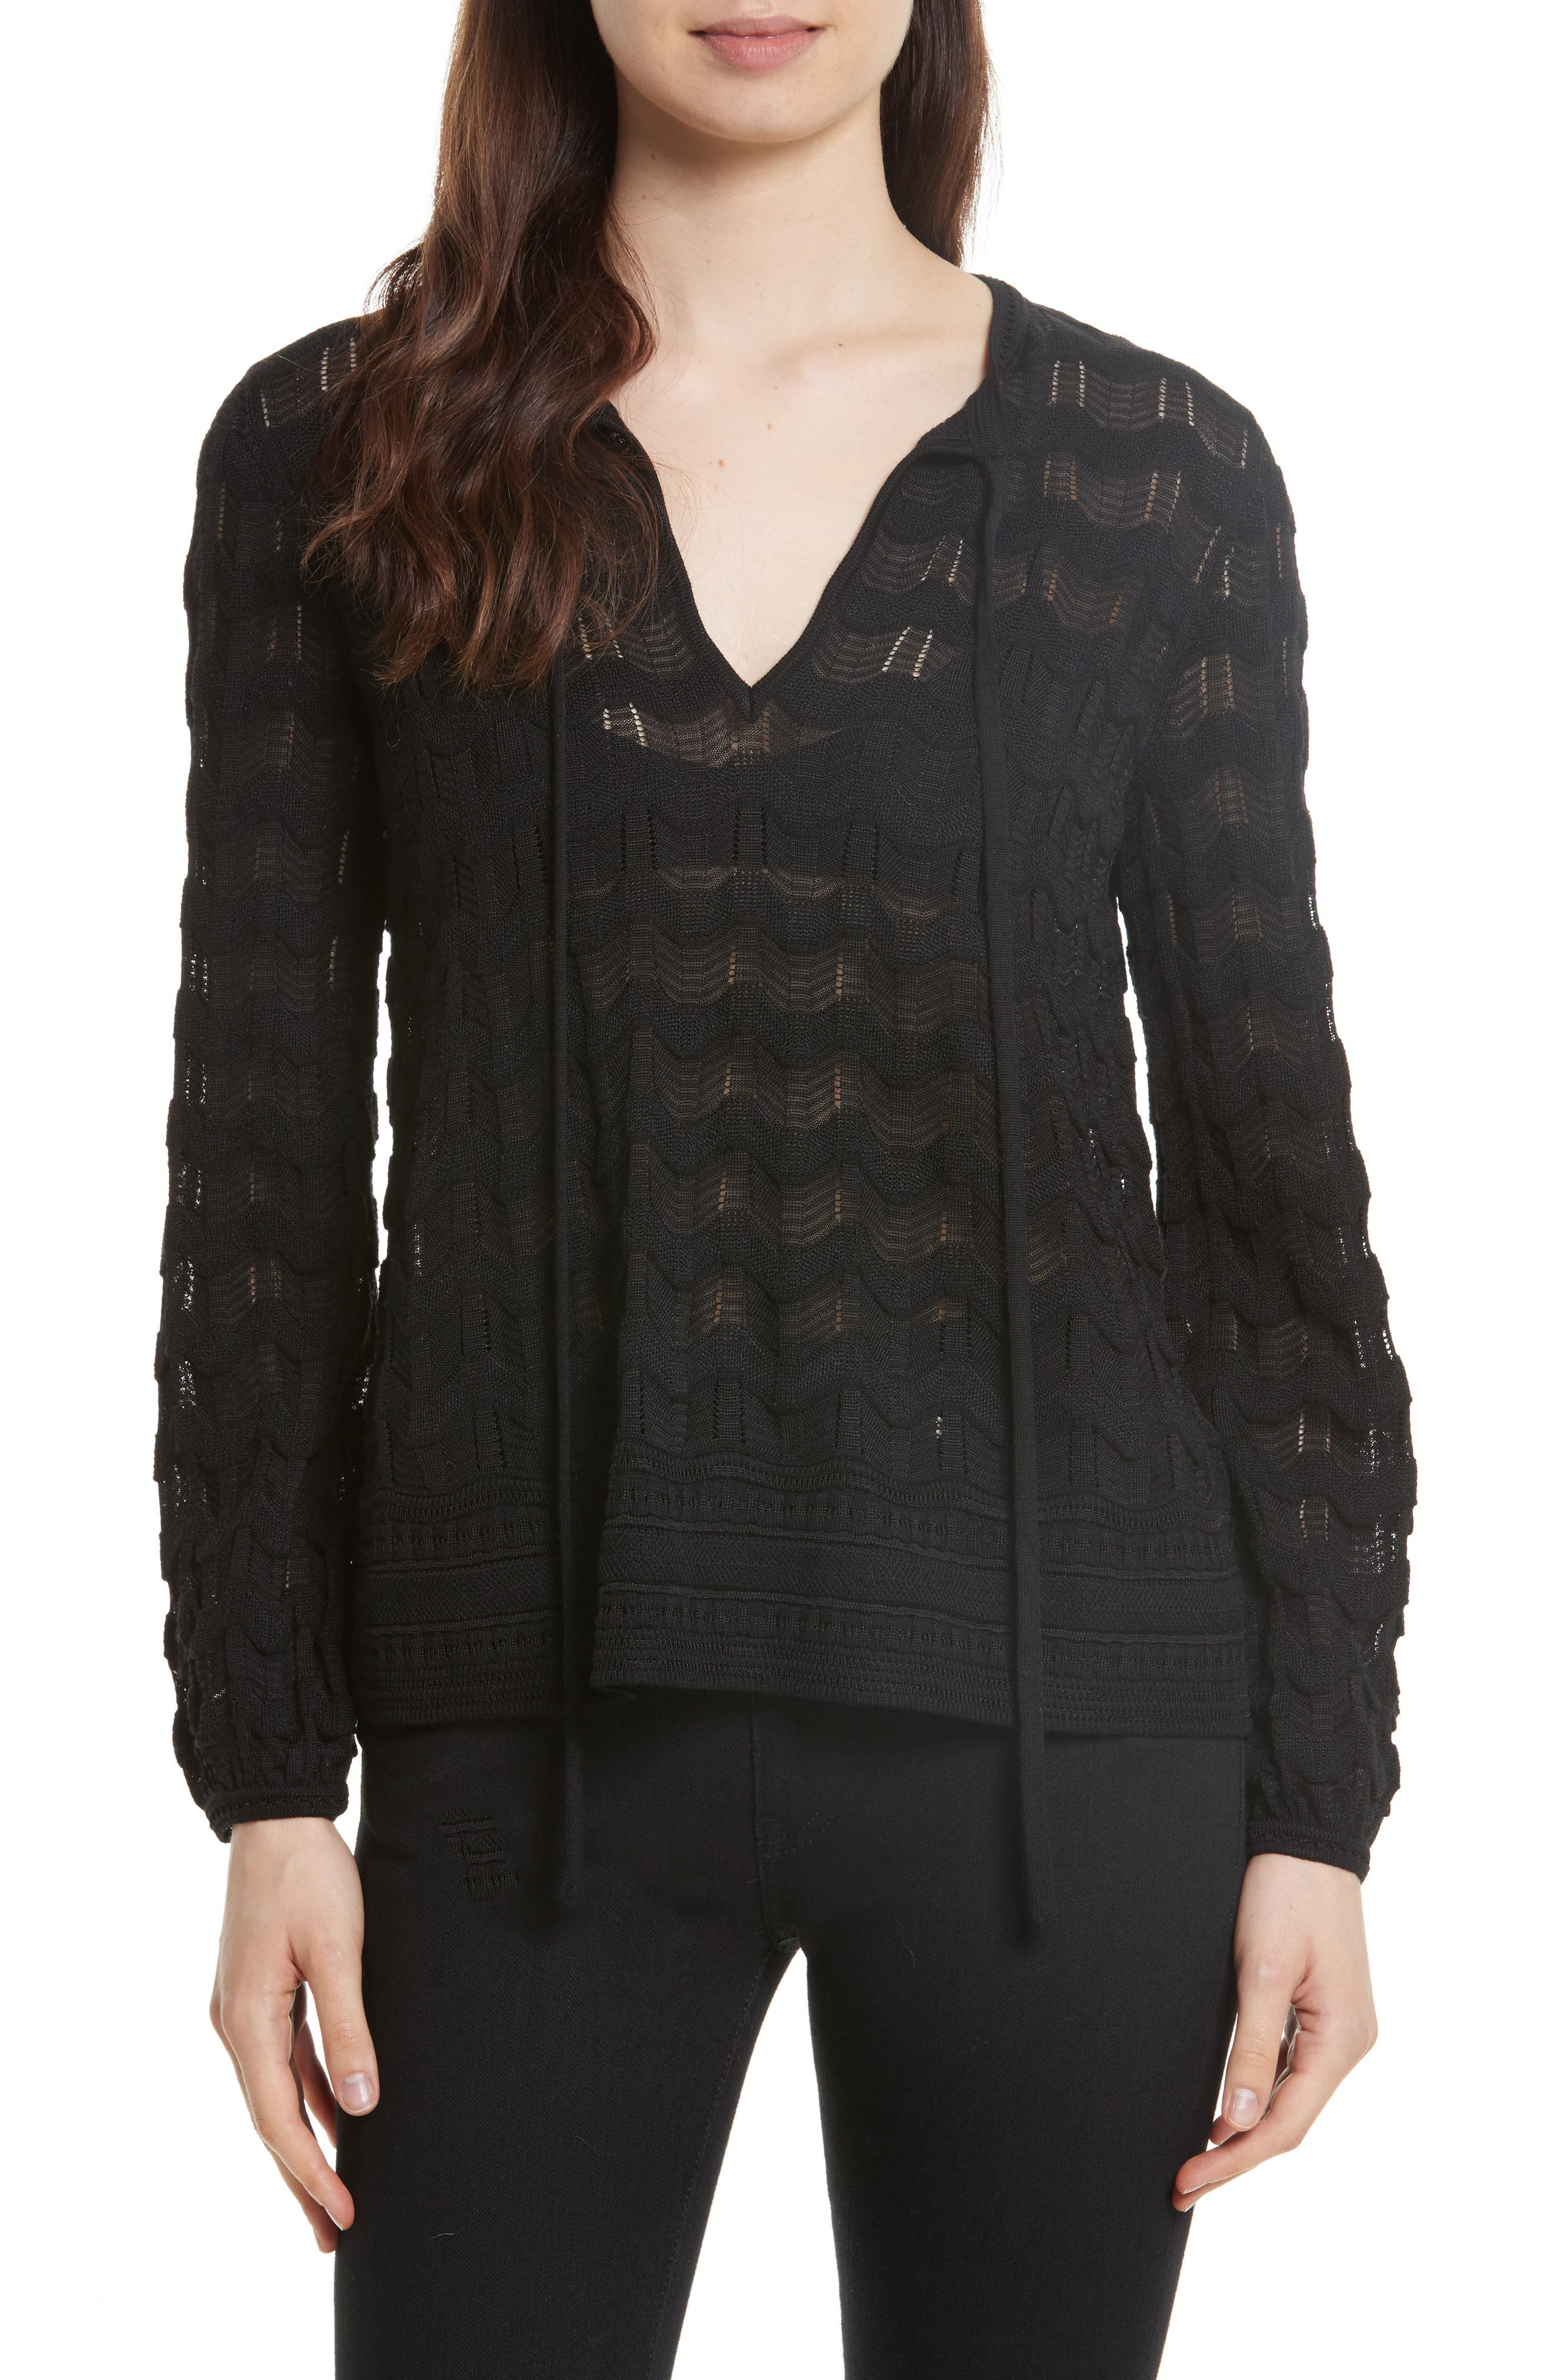 Main Image - M Missoni Tie Neck Openwork Knit Top